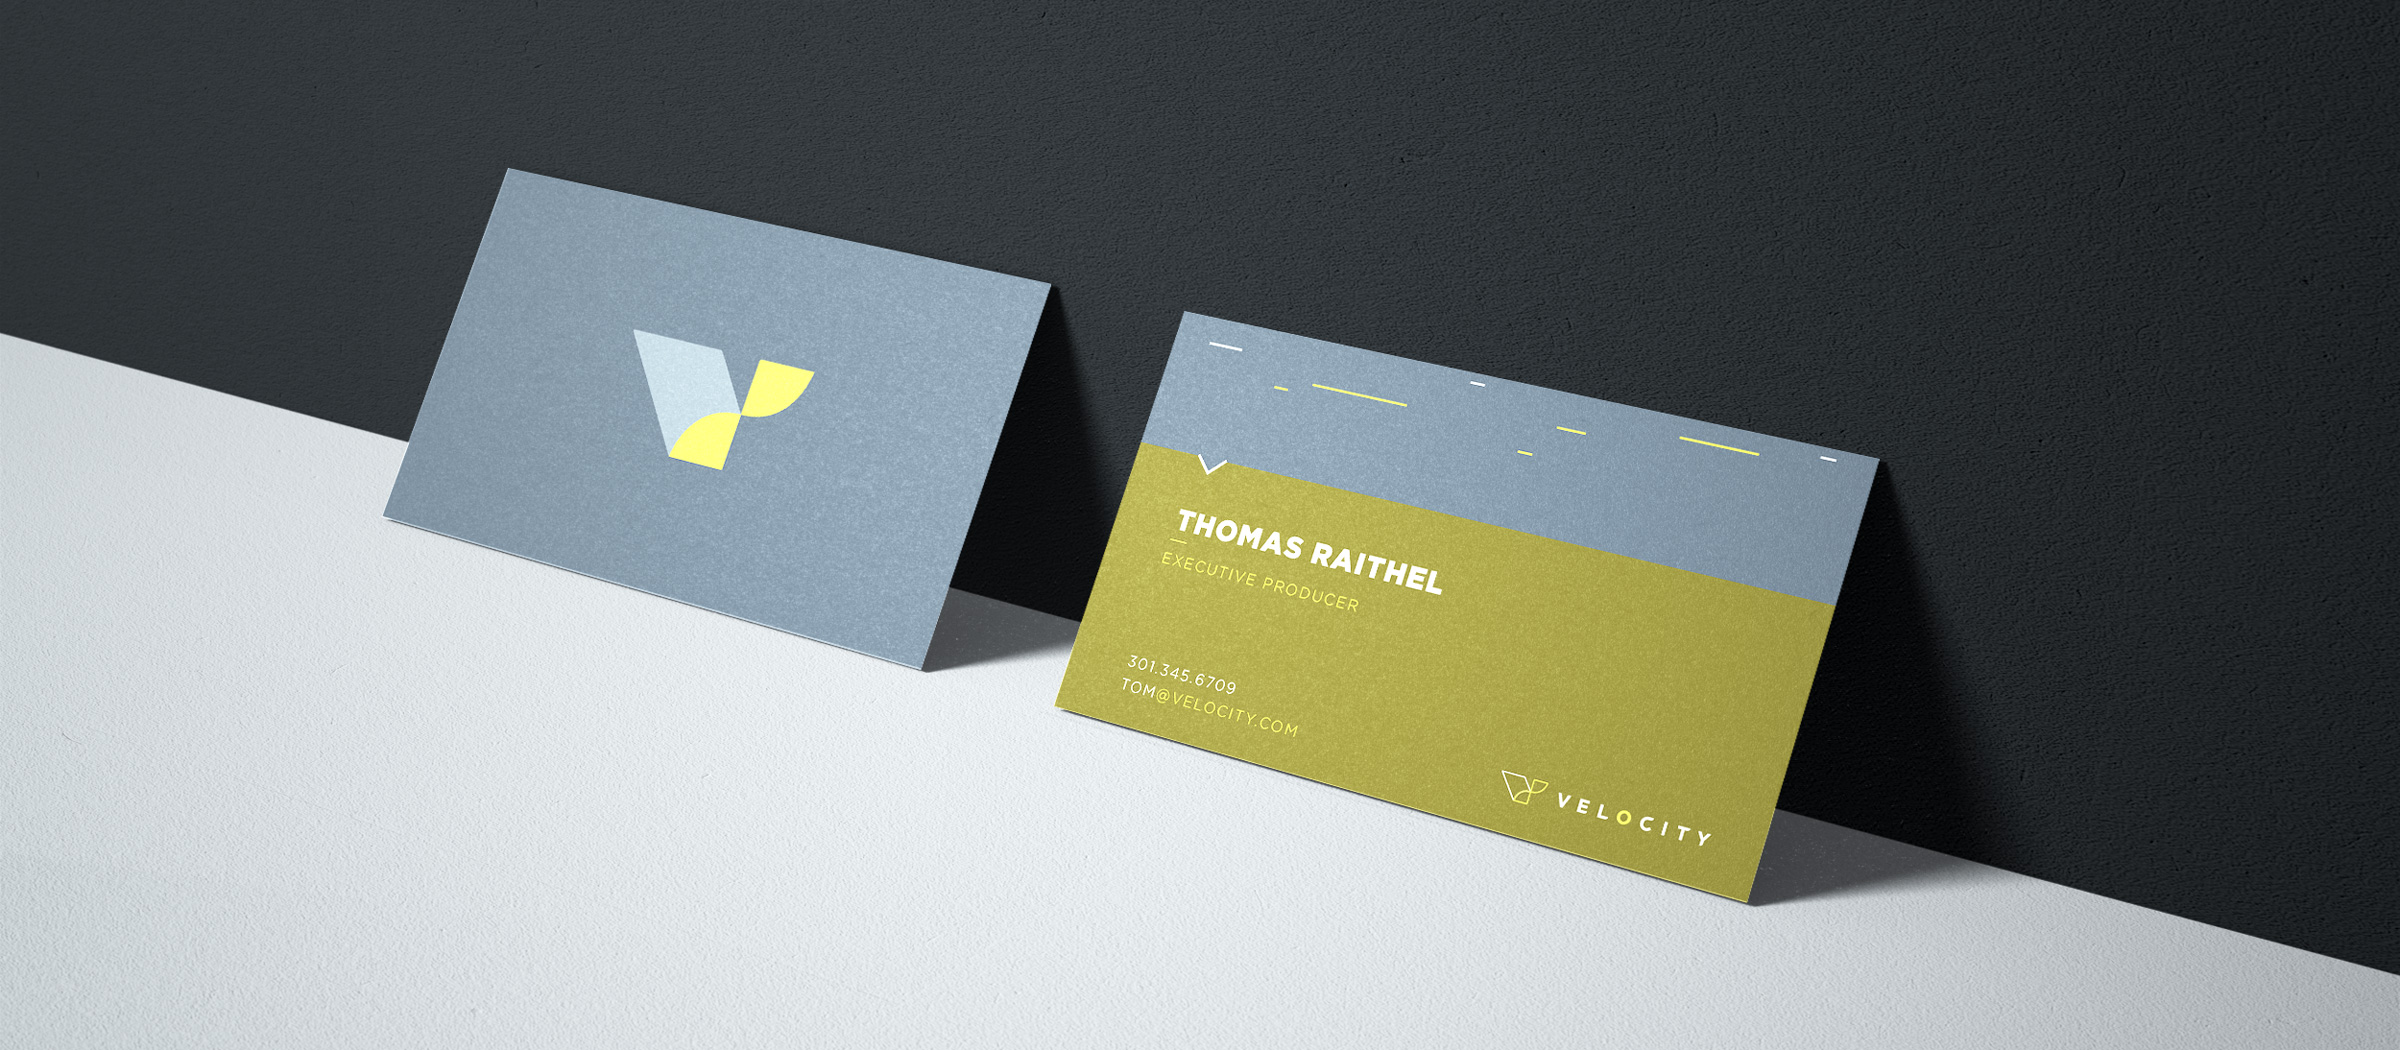 Velocity_Business_Card_V2